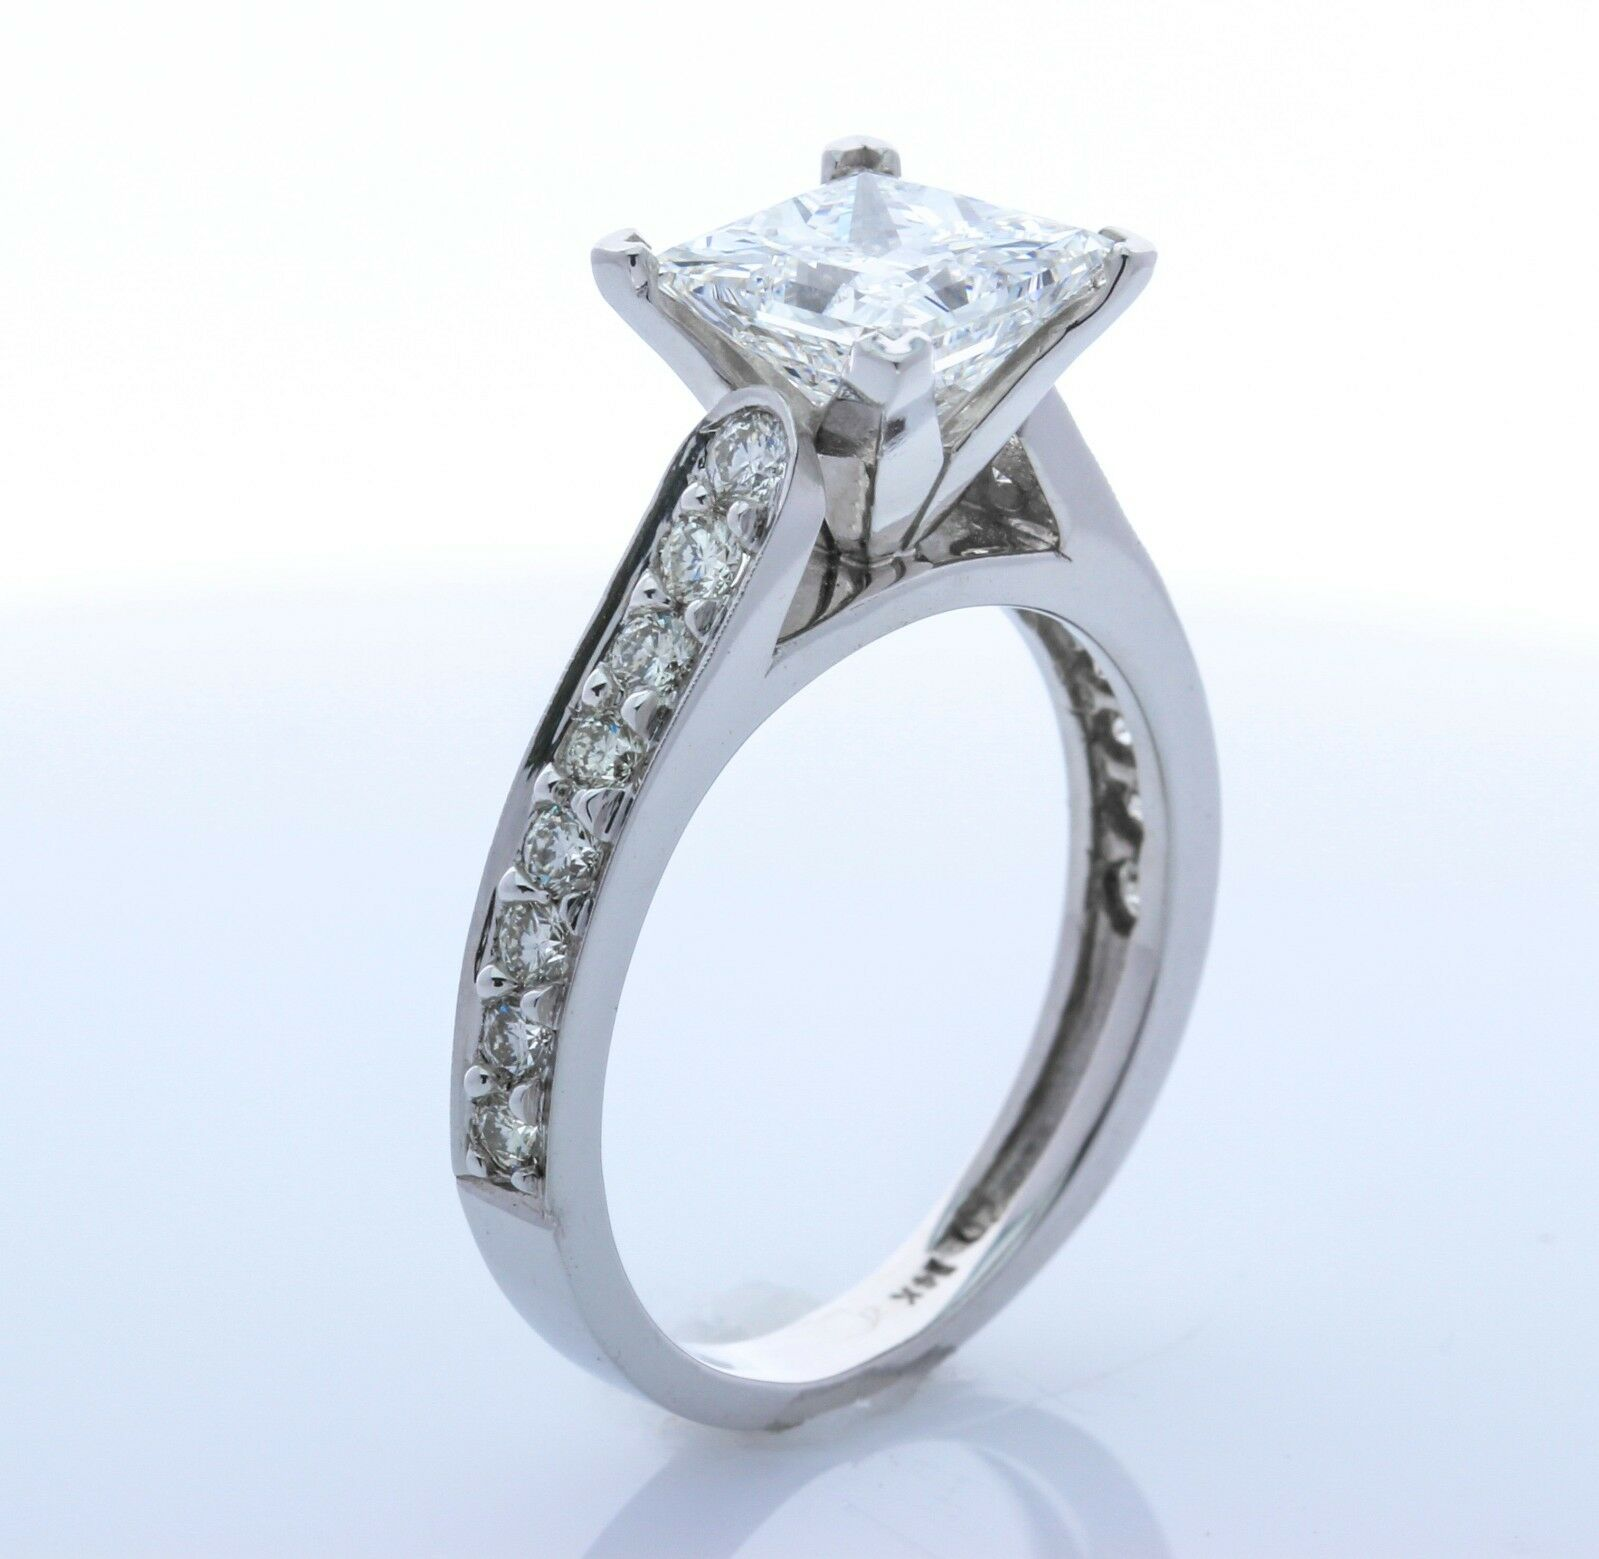 14k White-gold Engagment Ring   SETTING ONLY (Size 7.75)